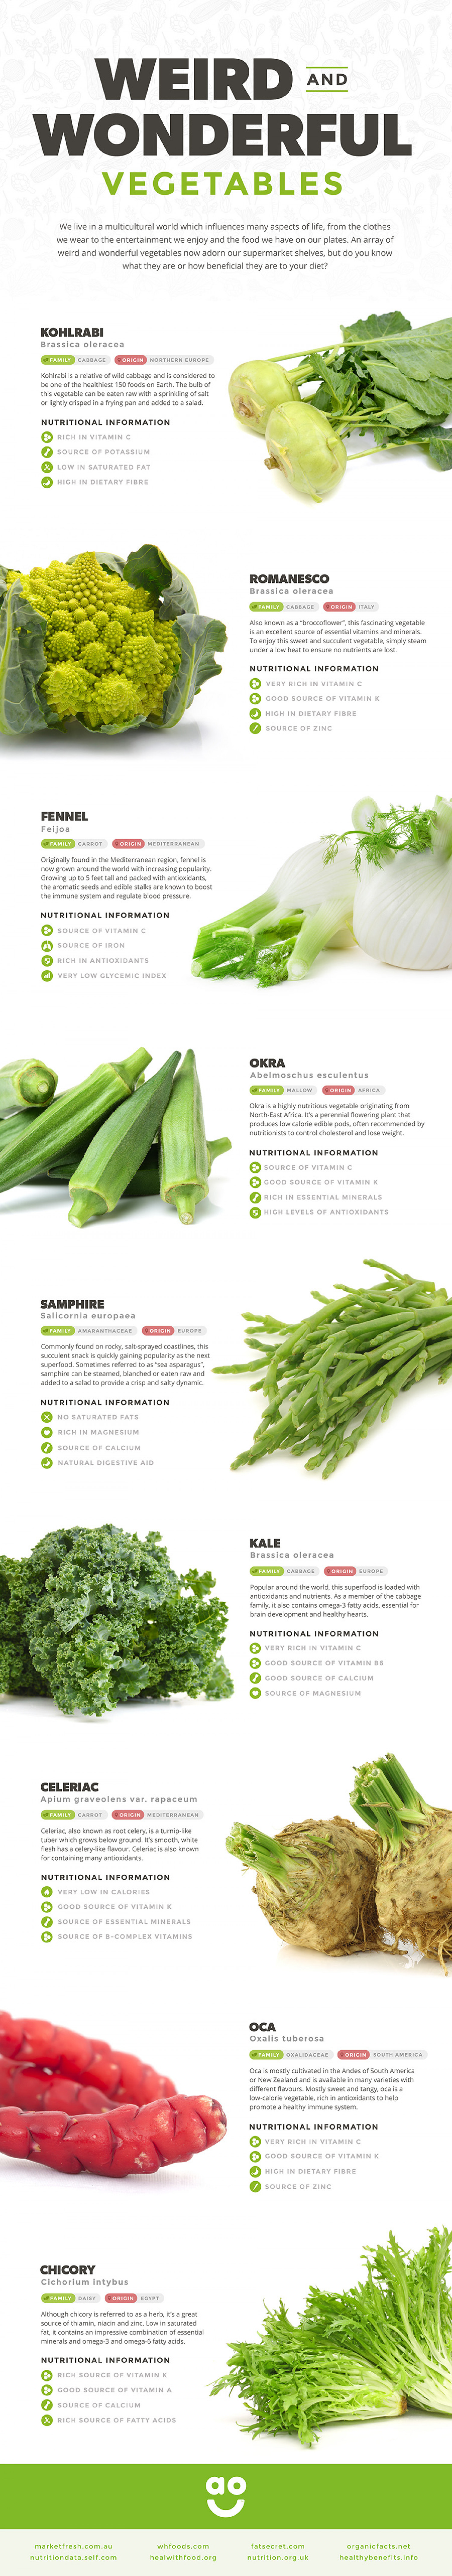 Weird and Wonderful Vegetables Infographic